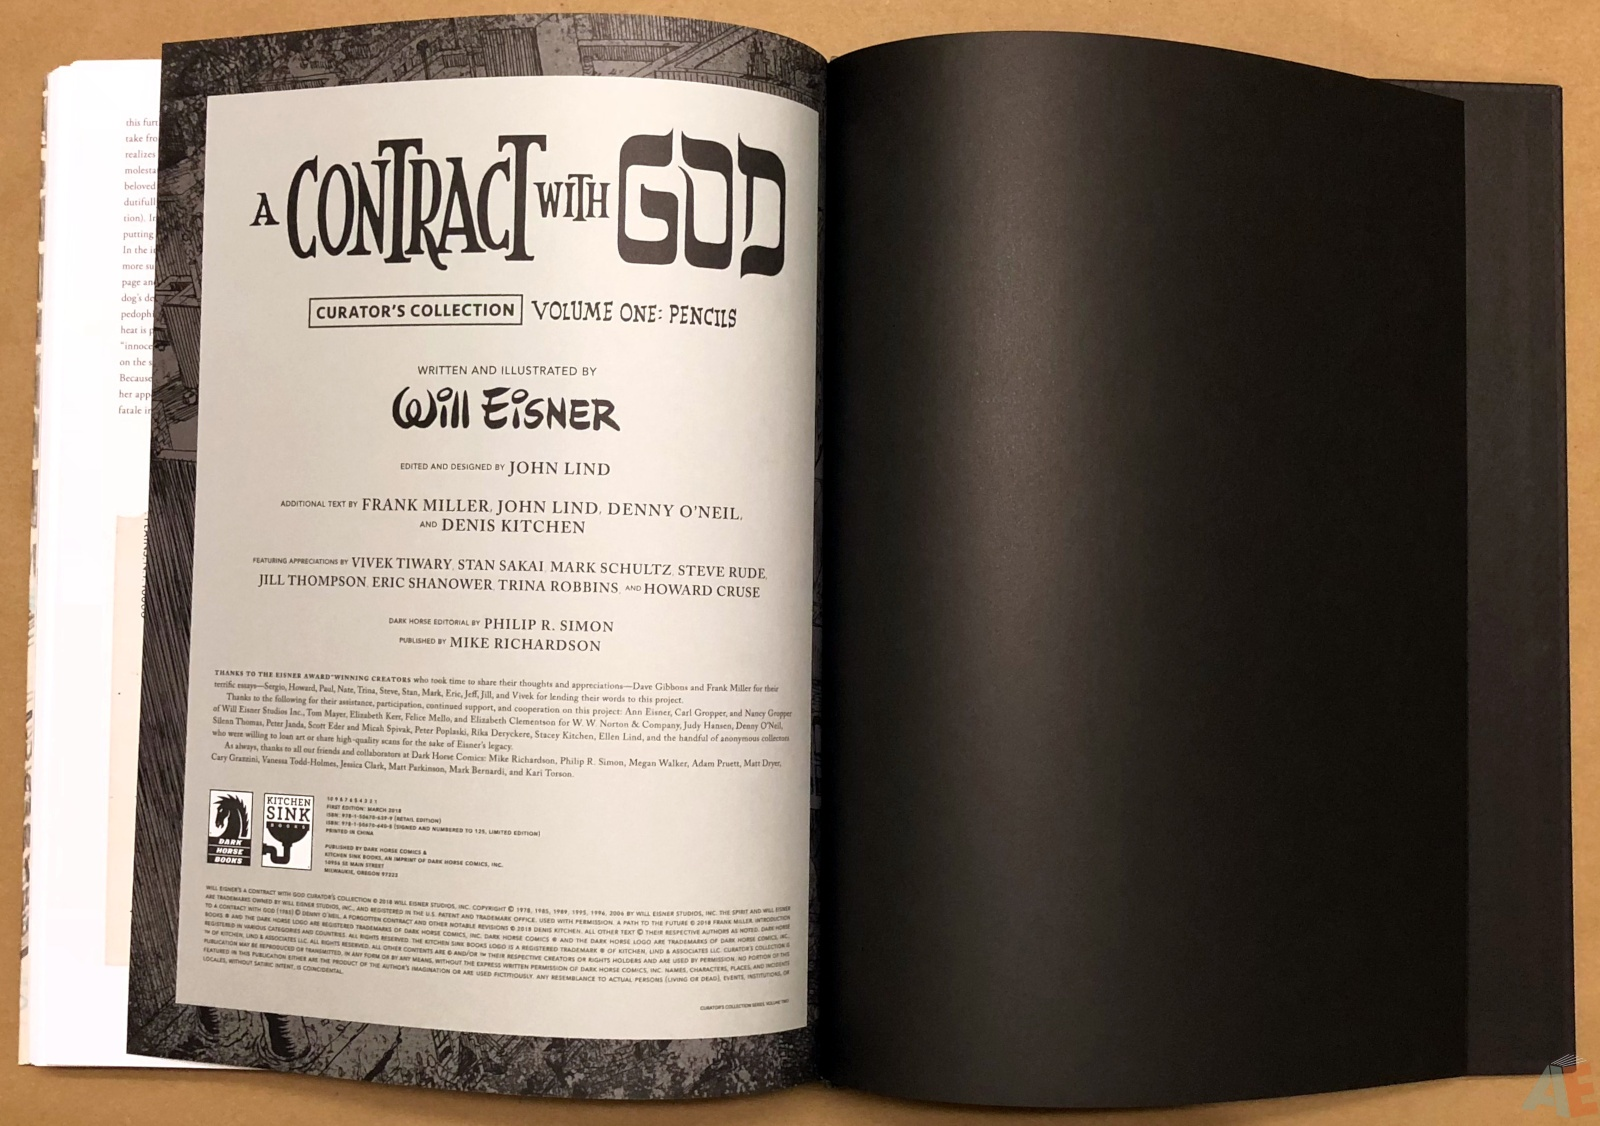 Will Eisner's A Contract with God Curator's Collection 52